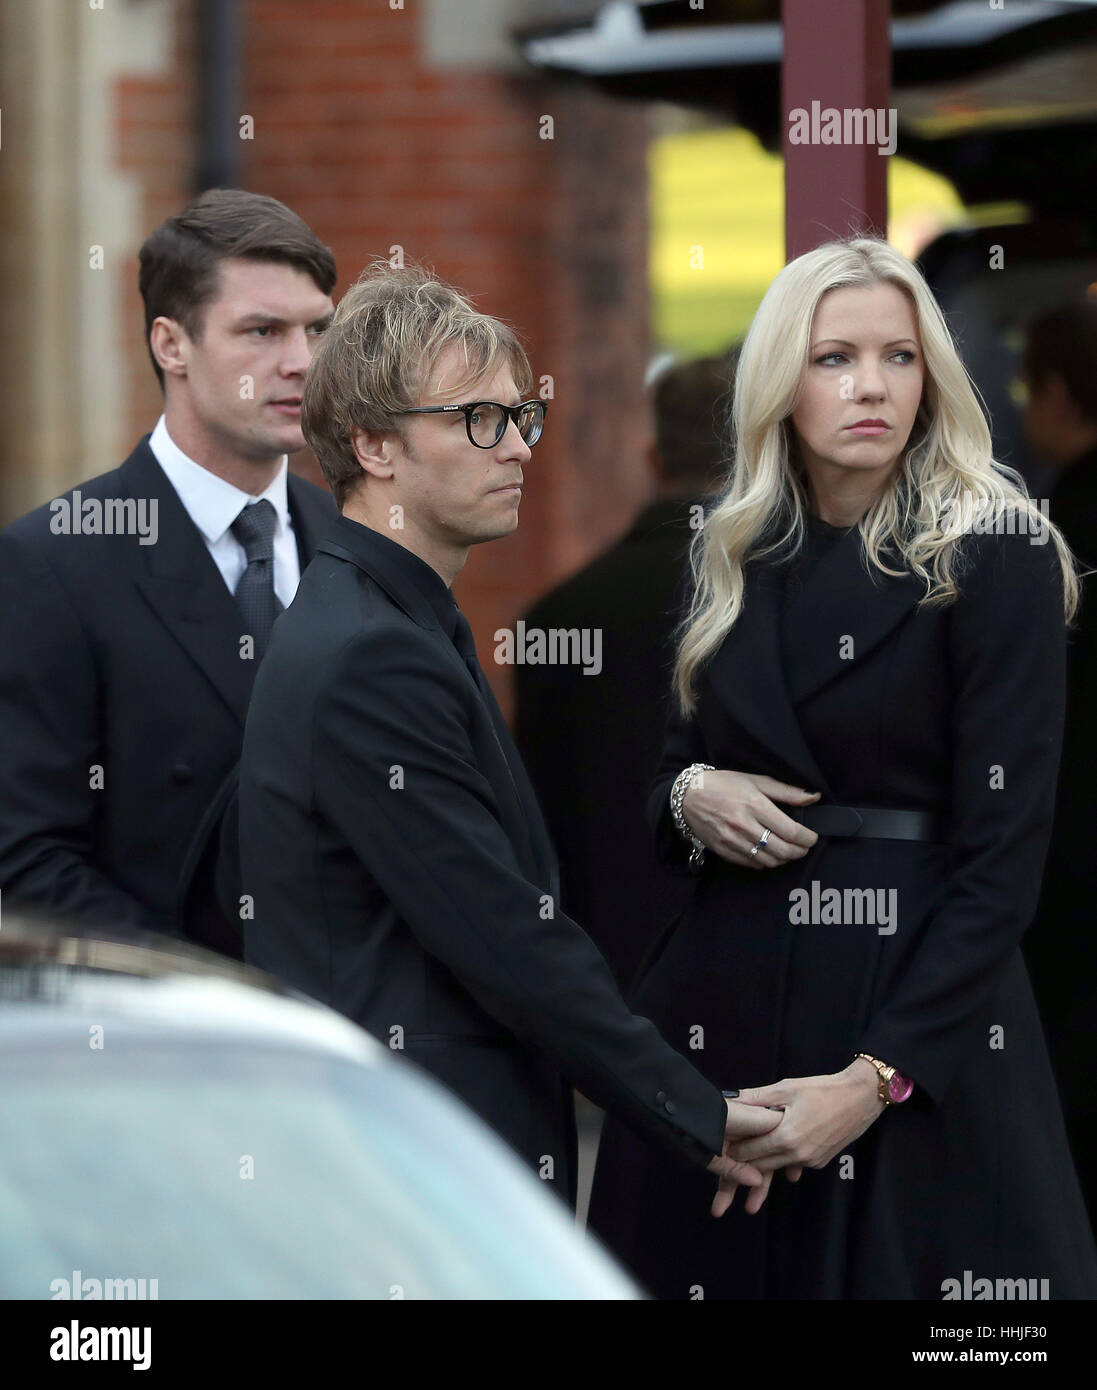 Rachel Gretton and Rick Parfitt Jnr (centre) arrive at Woking Crematorium for the funeral of his father and Status - Stock Image